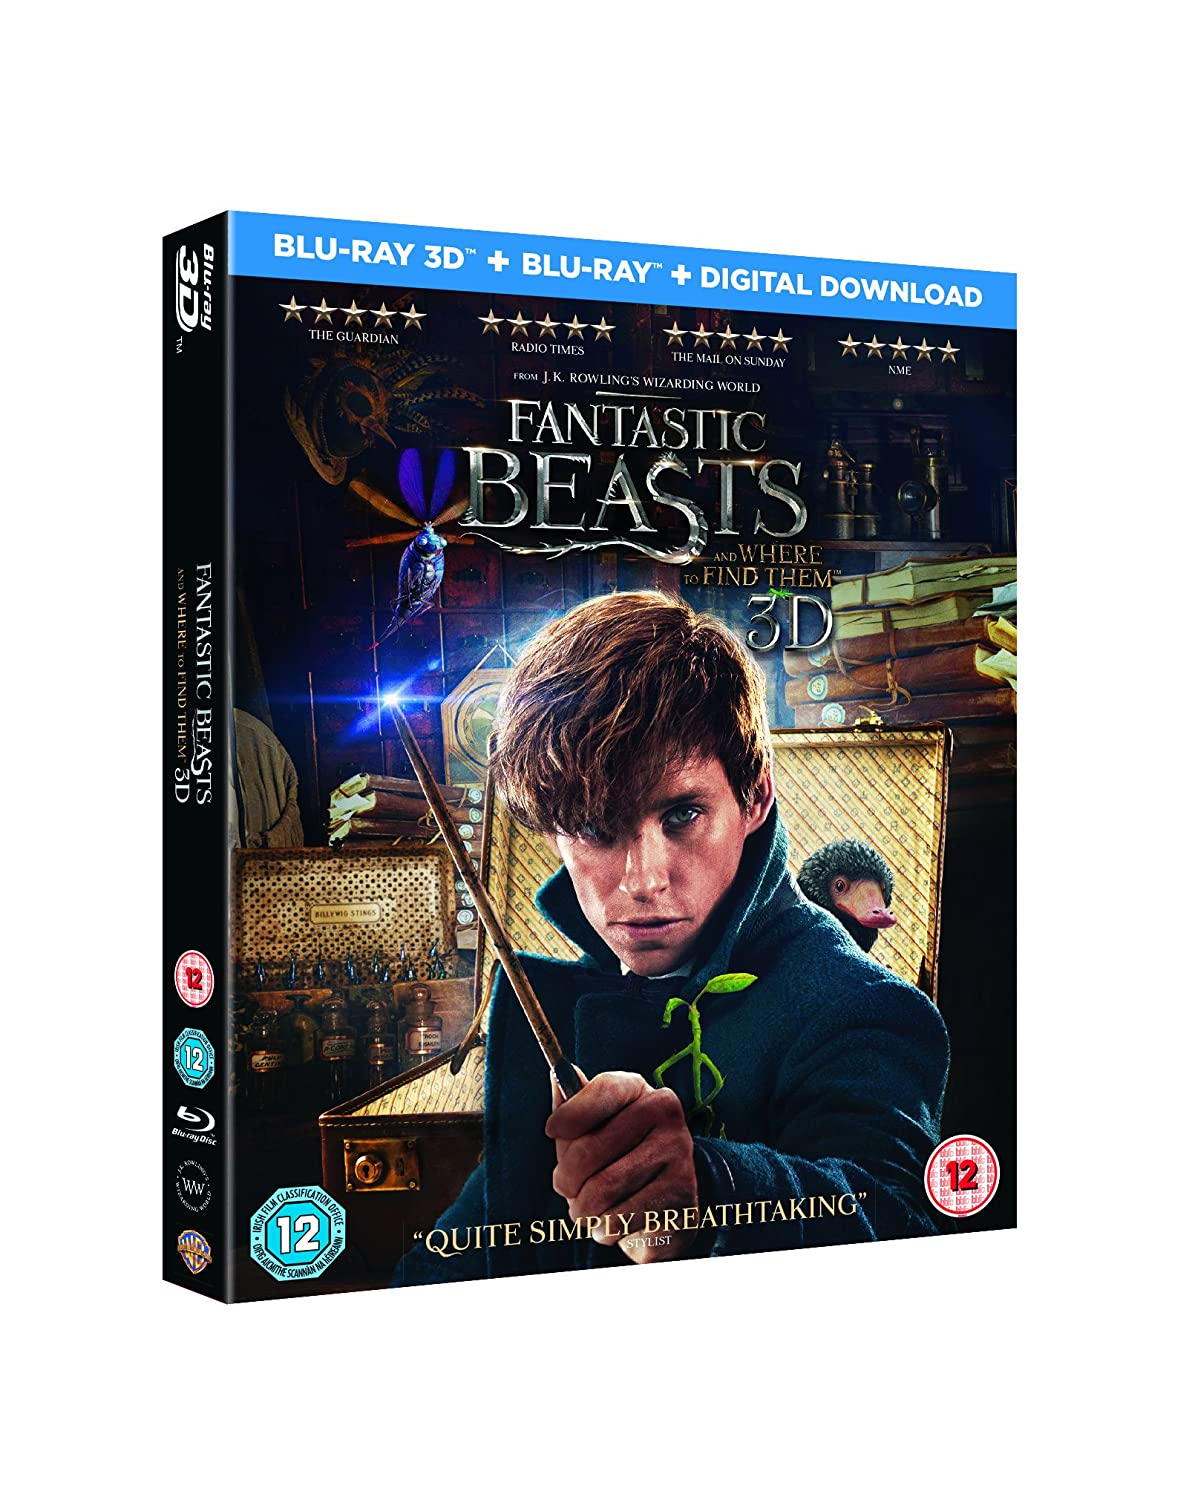 Amazon Com Fantastic Beasts And Where To Find Them Blu Ray 3d Blu Ray Digital Download 2016 Movies Tv